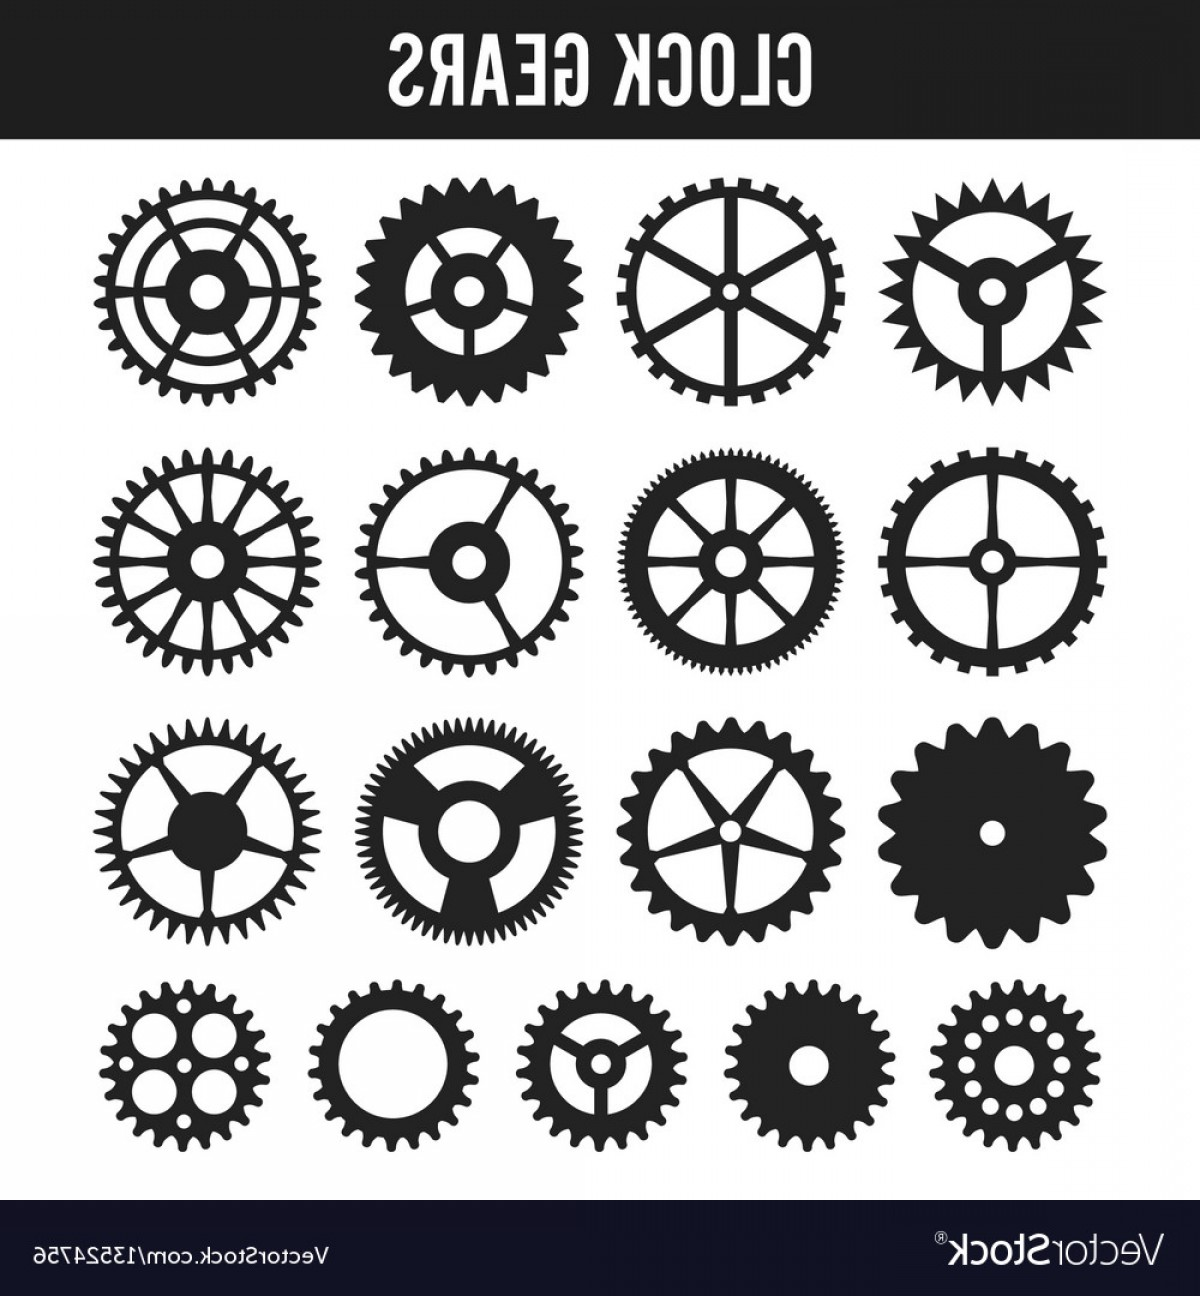 Watch Gears Vector: Clock Gears Black Icons Isolated On White Vector